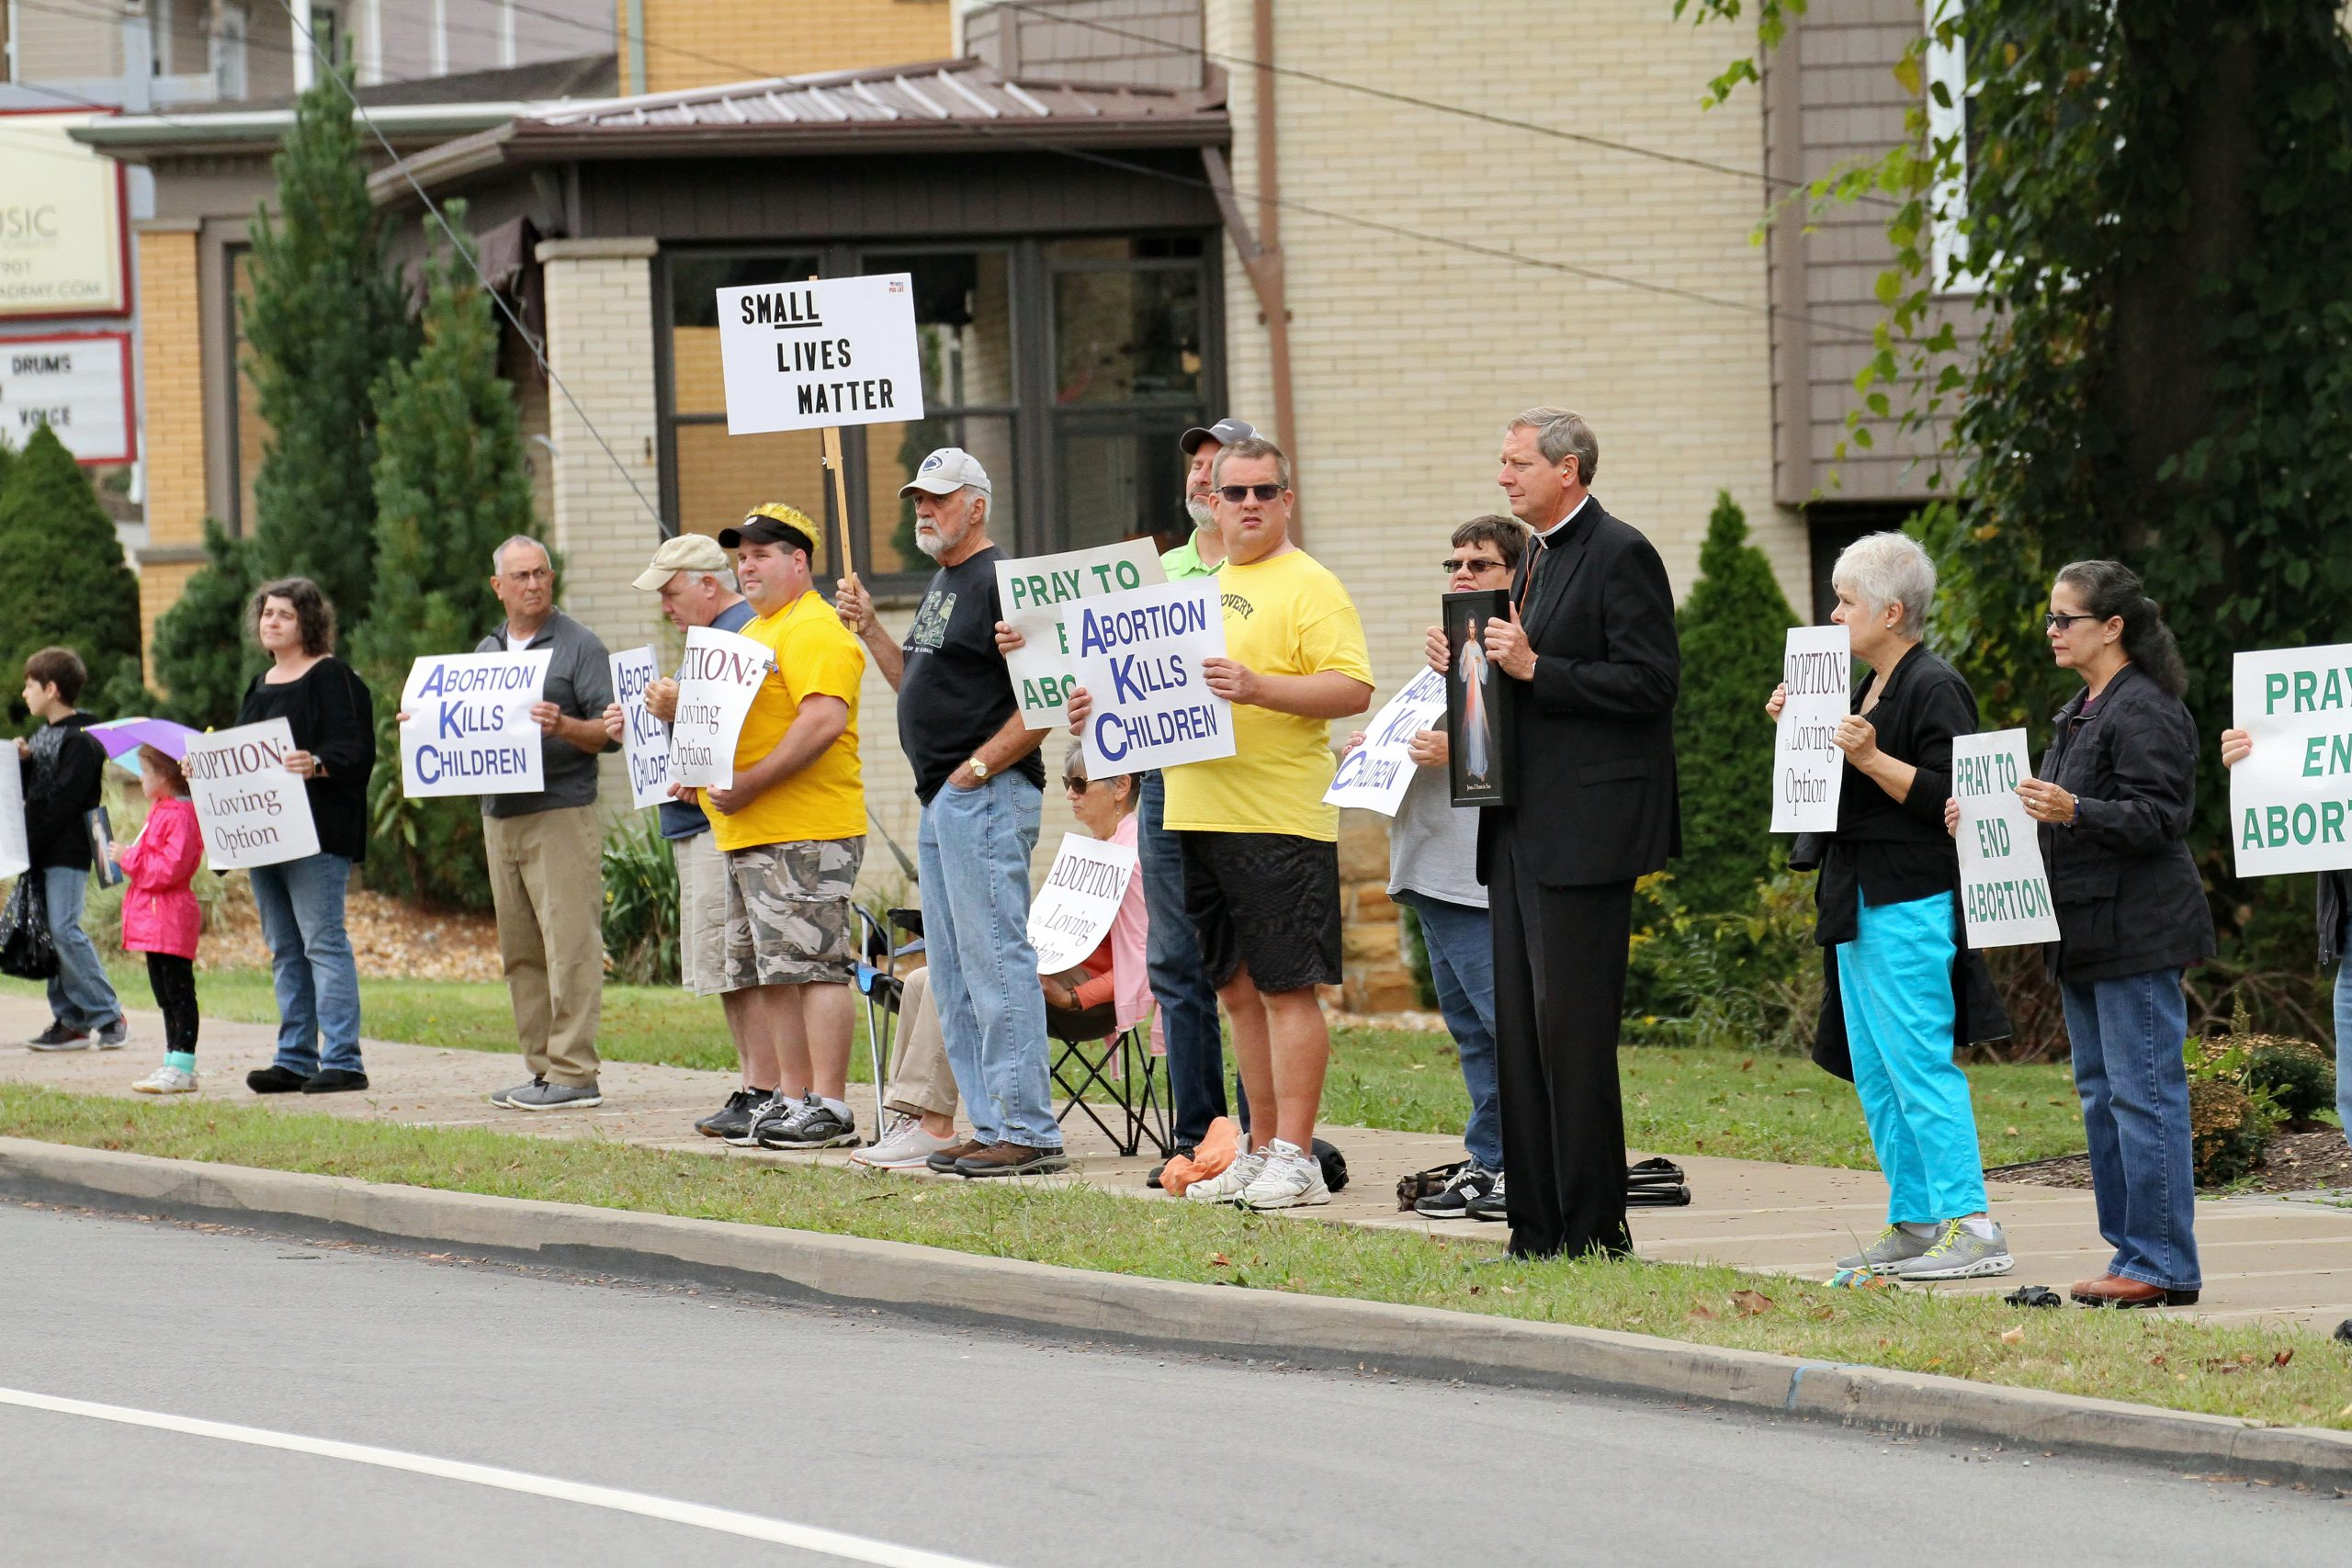 A group of parishioners stand along the side of the road holding signs.